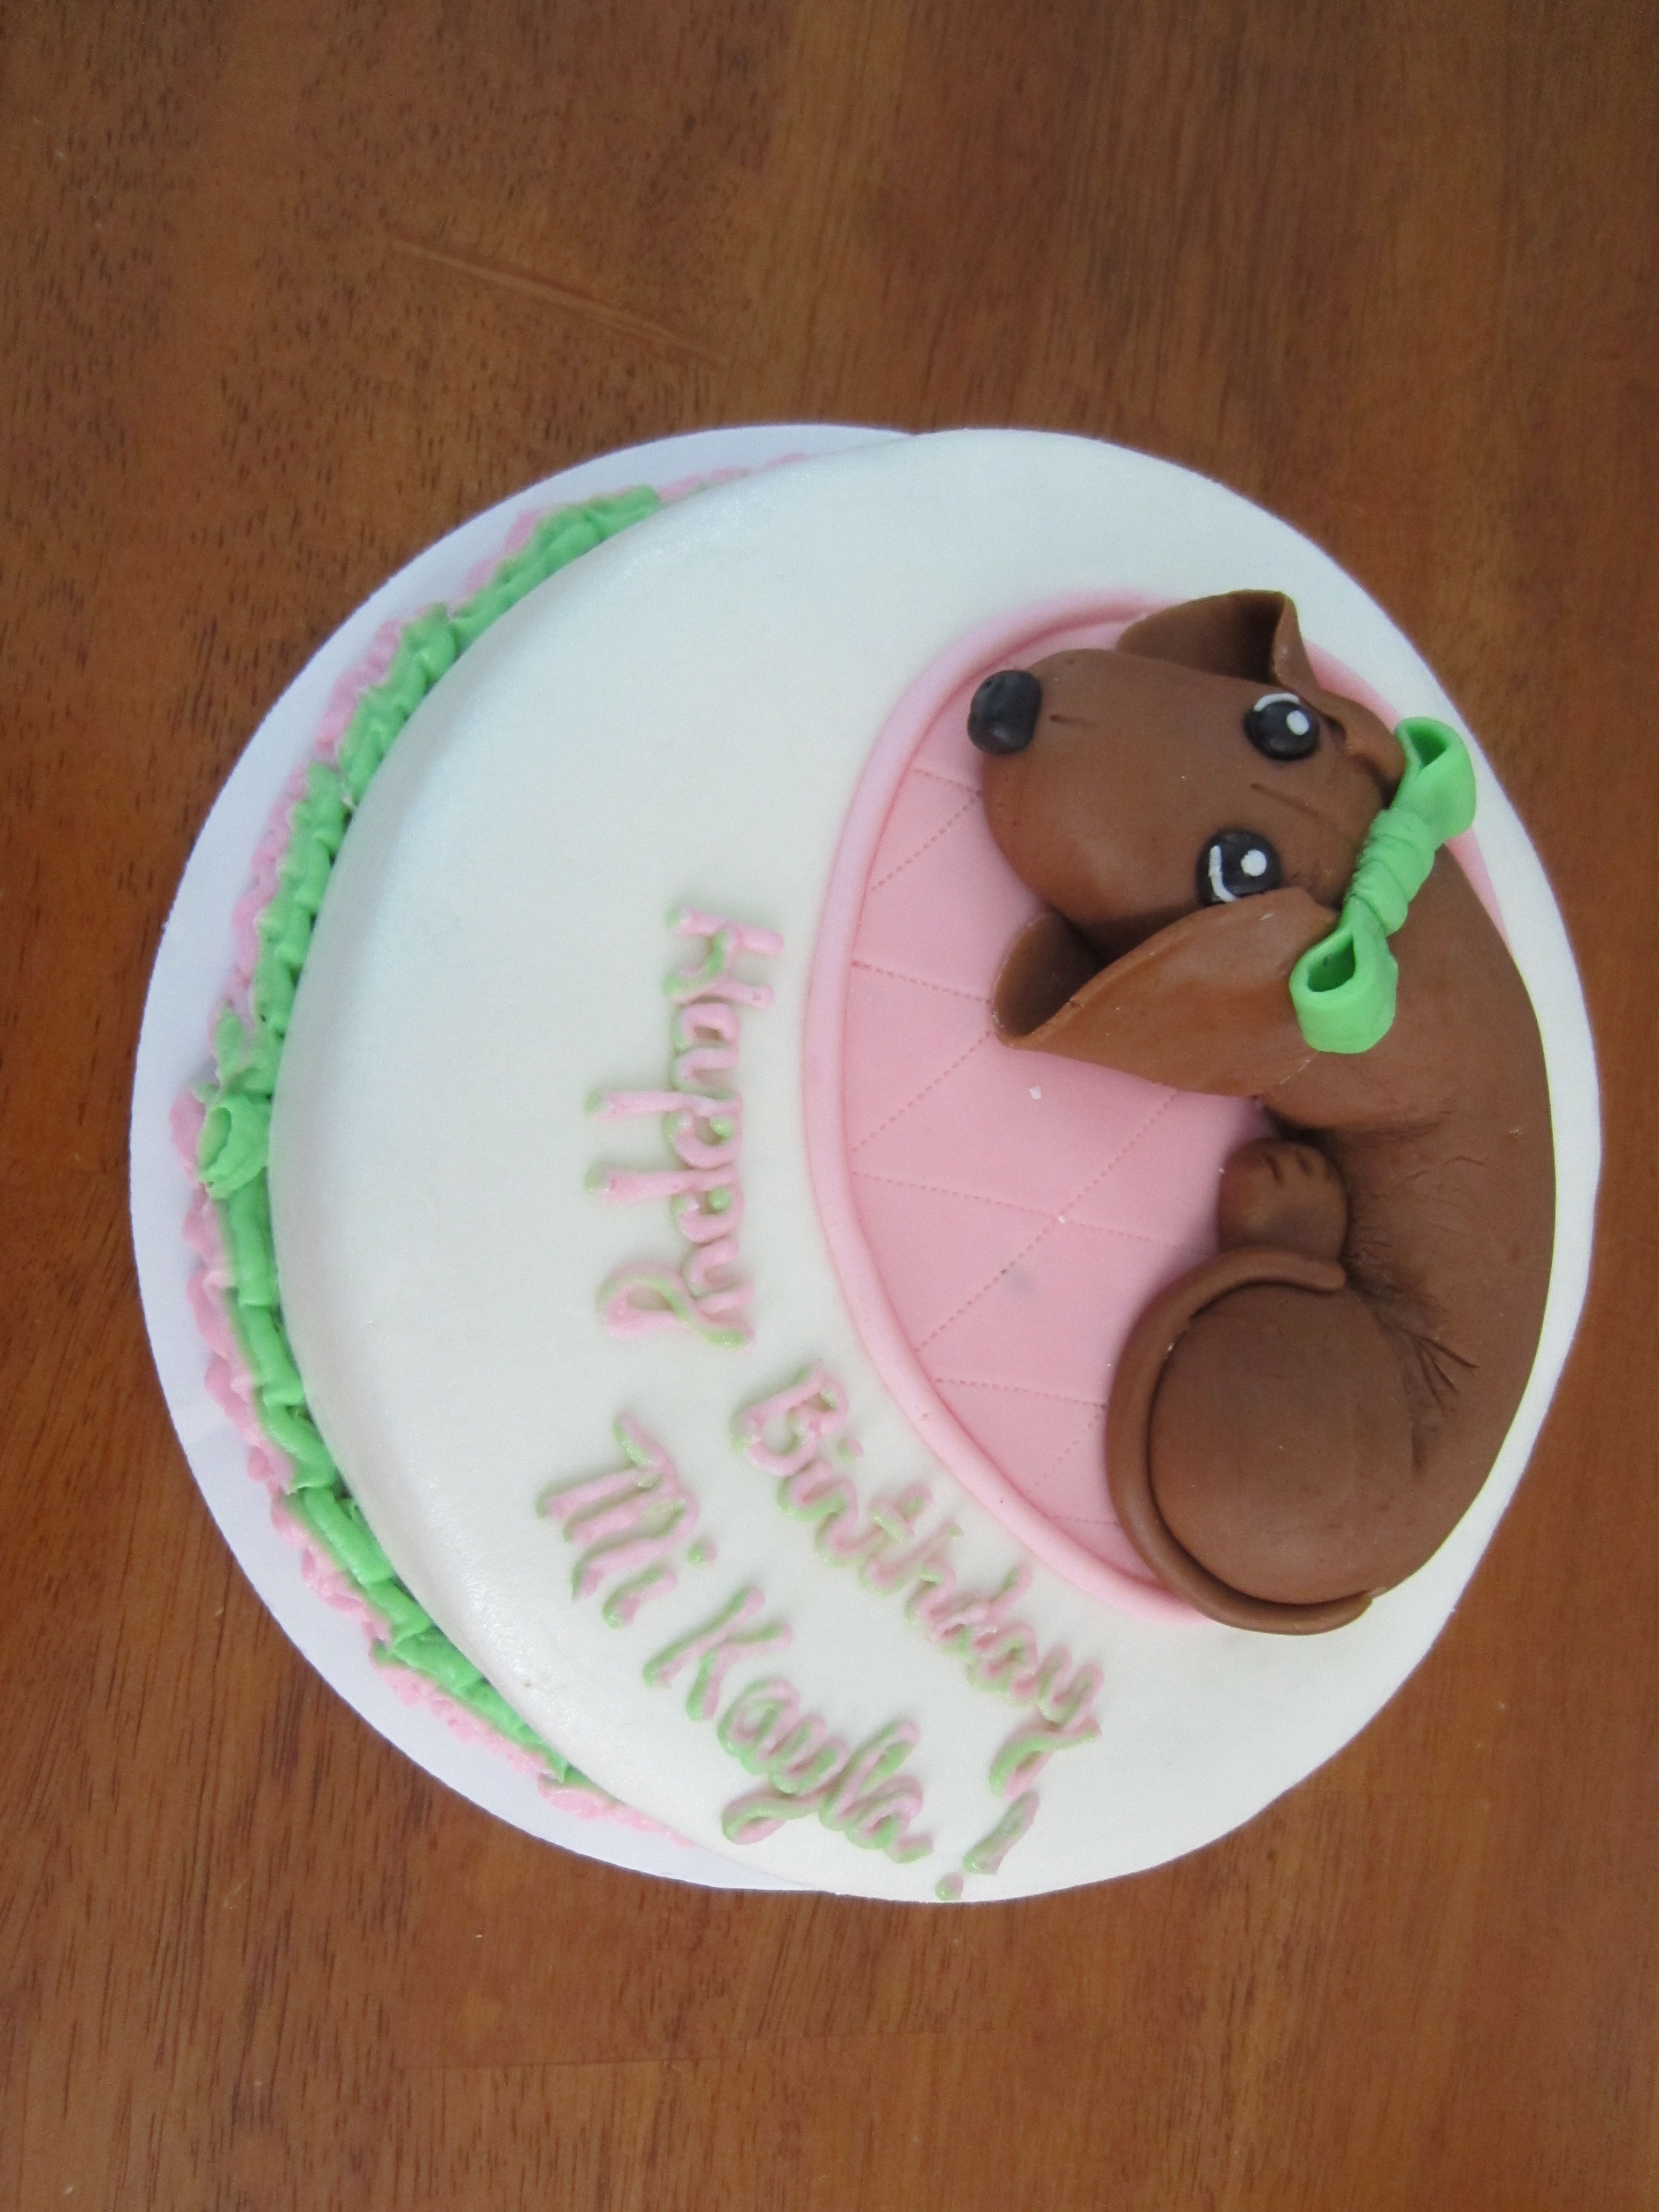 Cake Decorating Central Hours : Birthday Cakes - CakeCentral.com